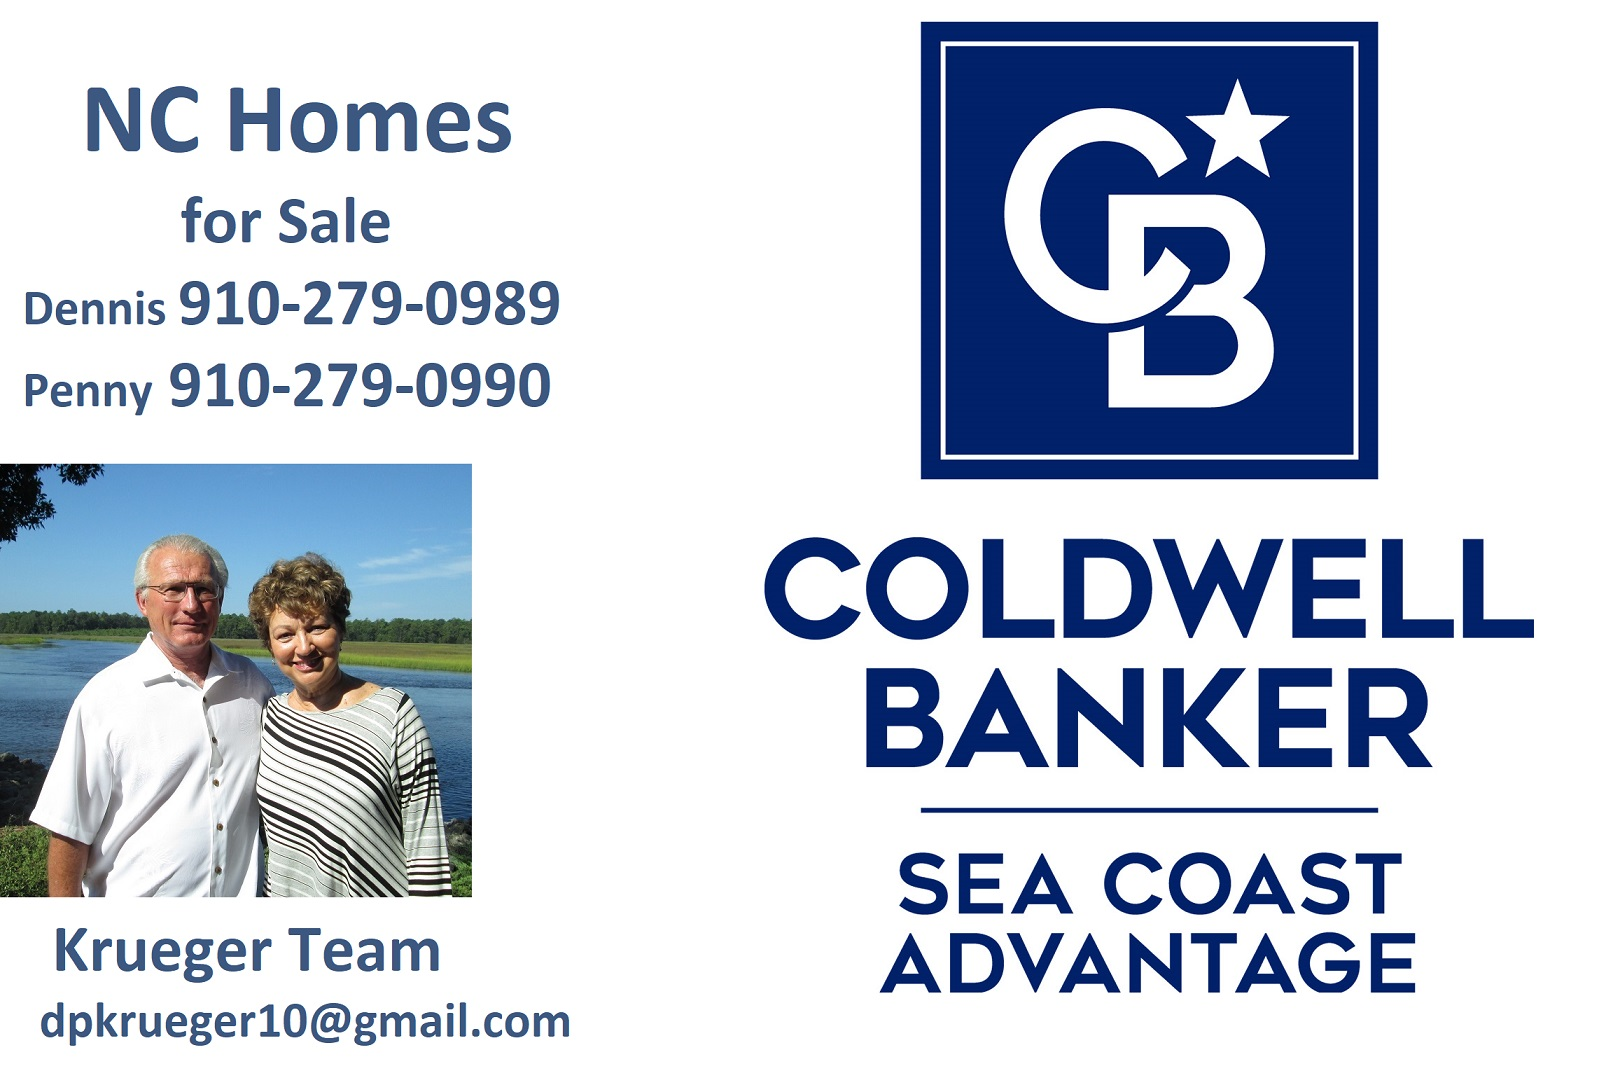 Krueger Team Coldwell Banker Sea Coast Advantage NC Homes